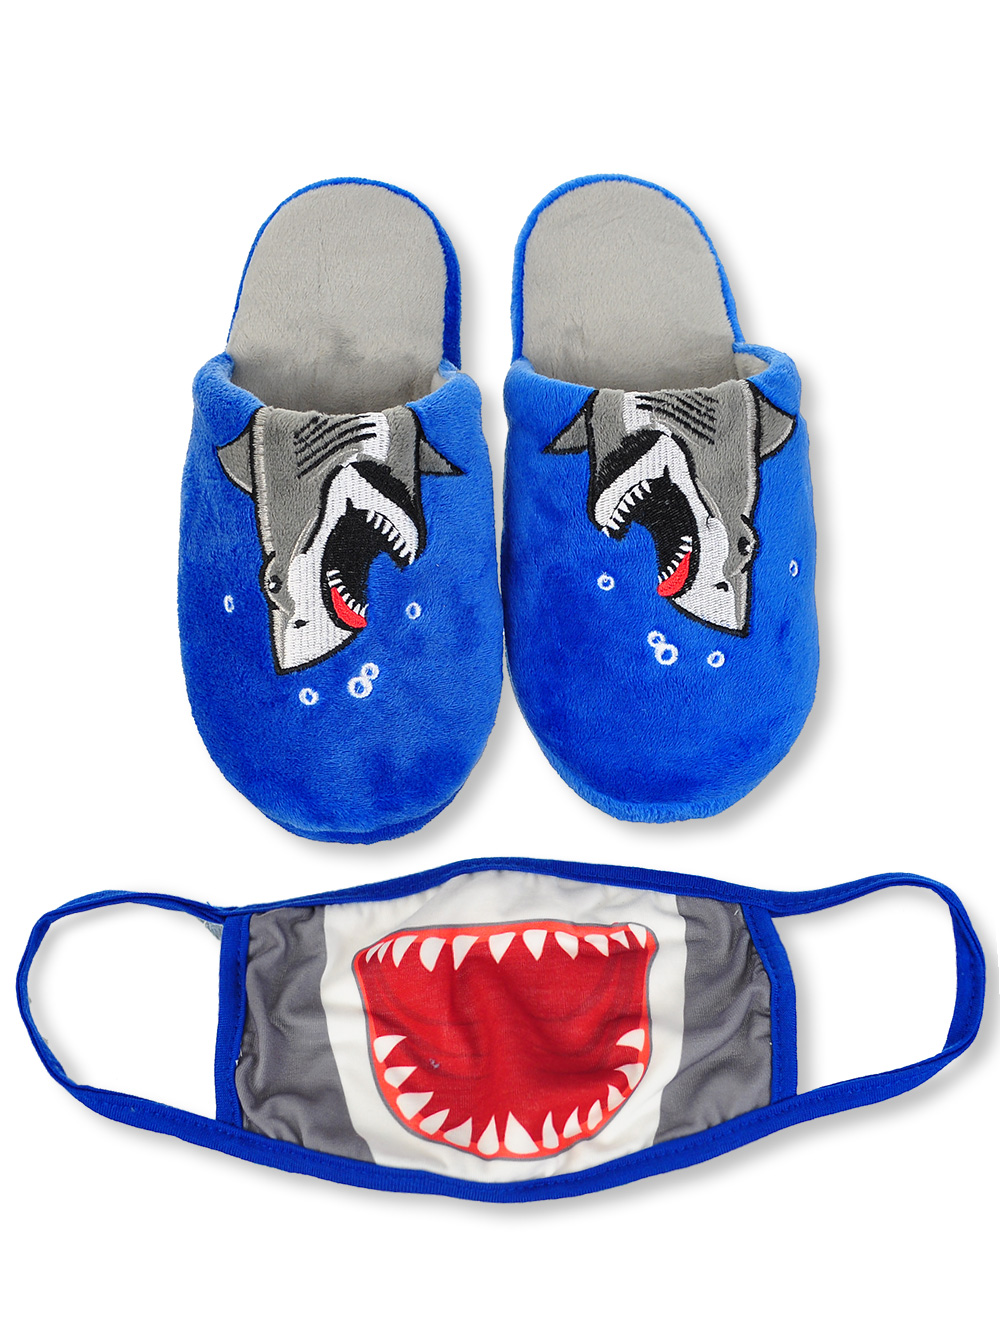 Shoes Slippers and Mask Set